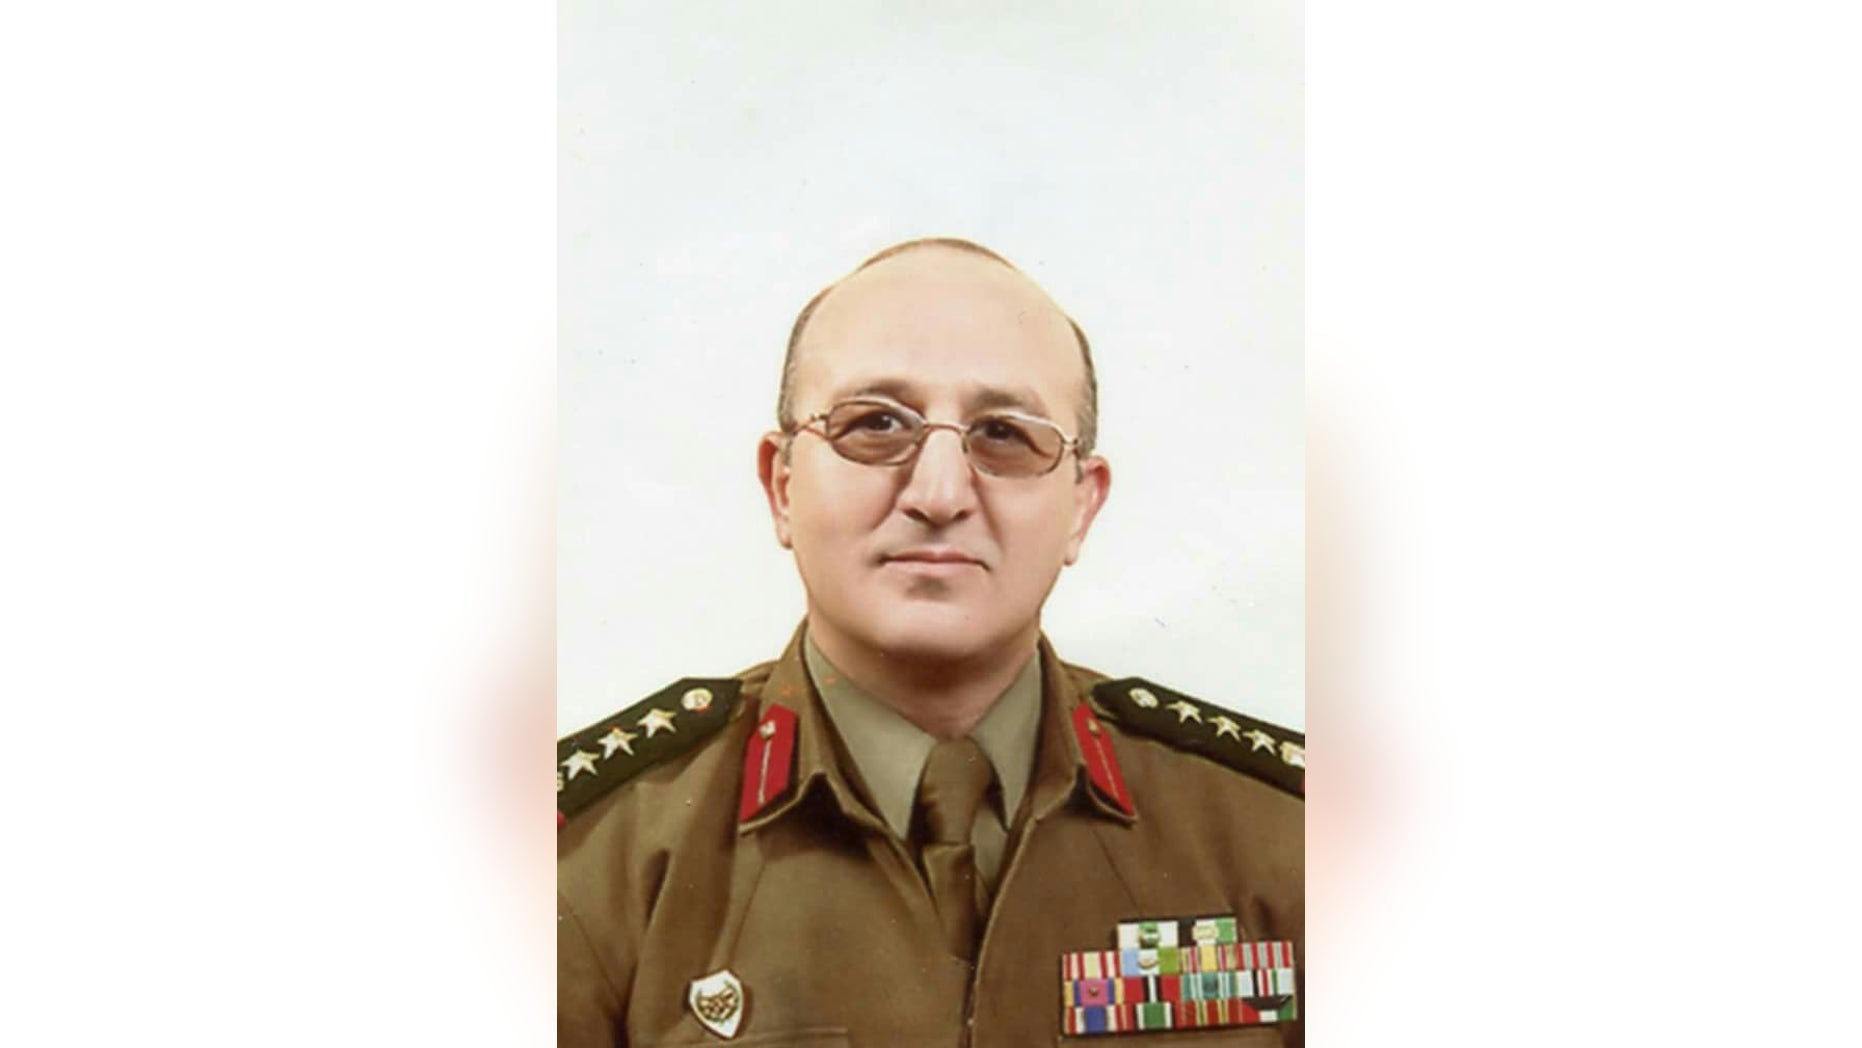 Brig. Gen. Zaher al-Sakat, once the military's chemical weapons chief in charge of such scientific operations for the Syrian Army, says the alleged sarin attacks are no surprise.